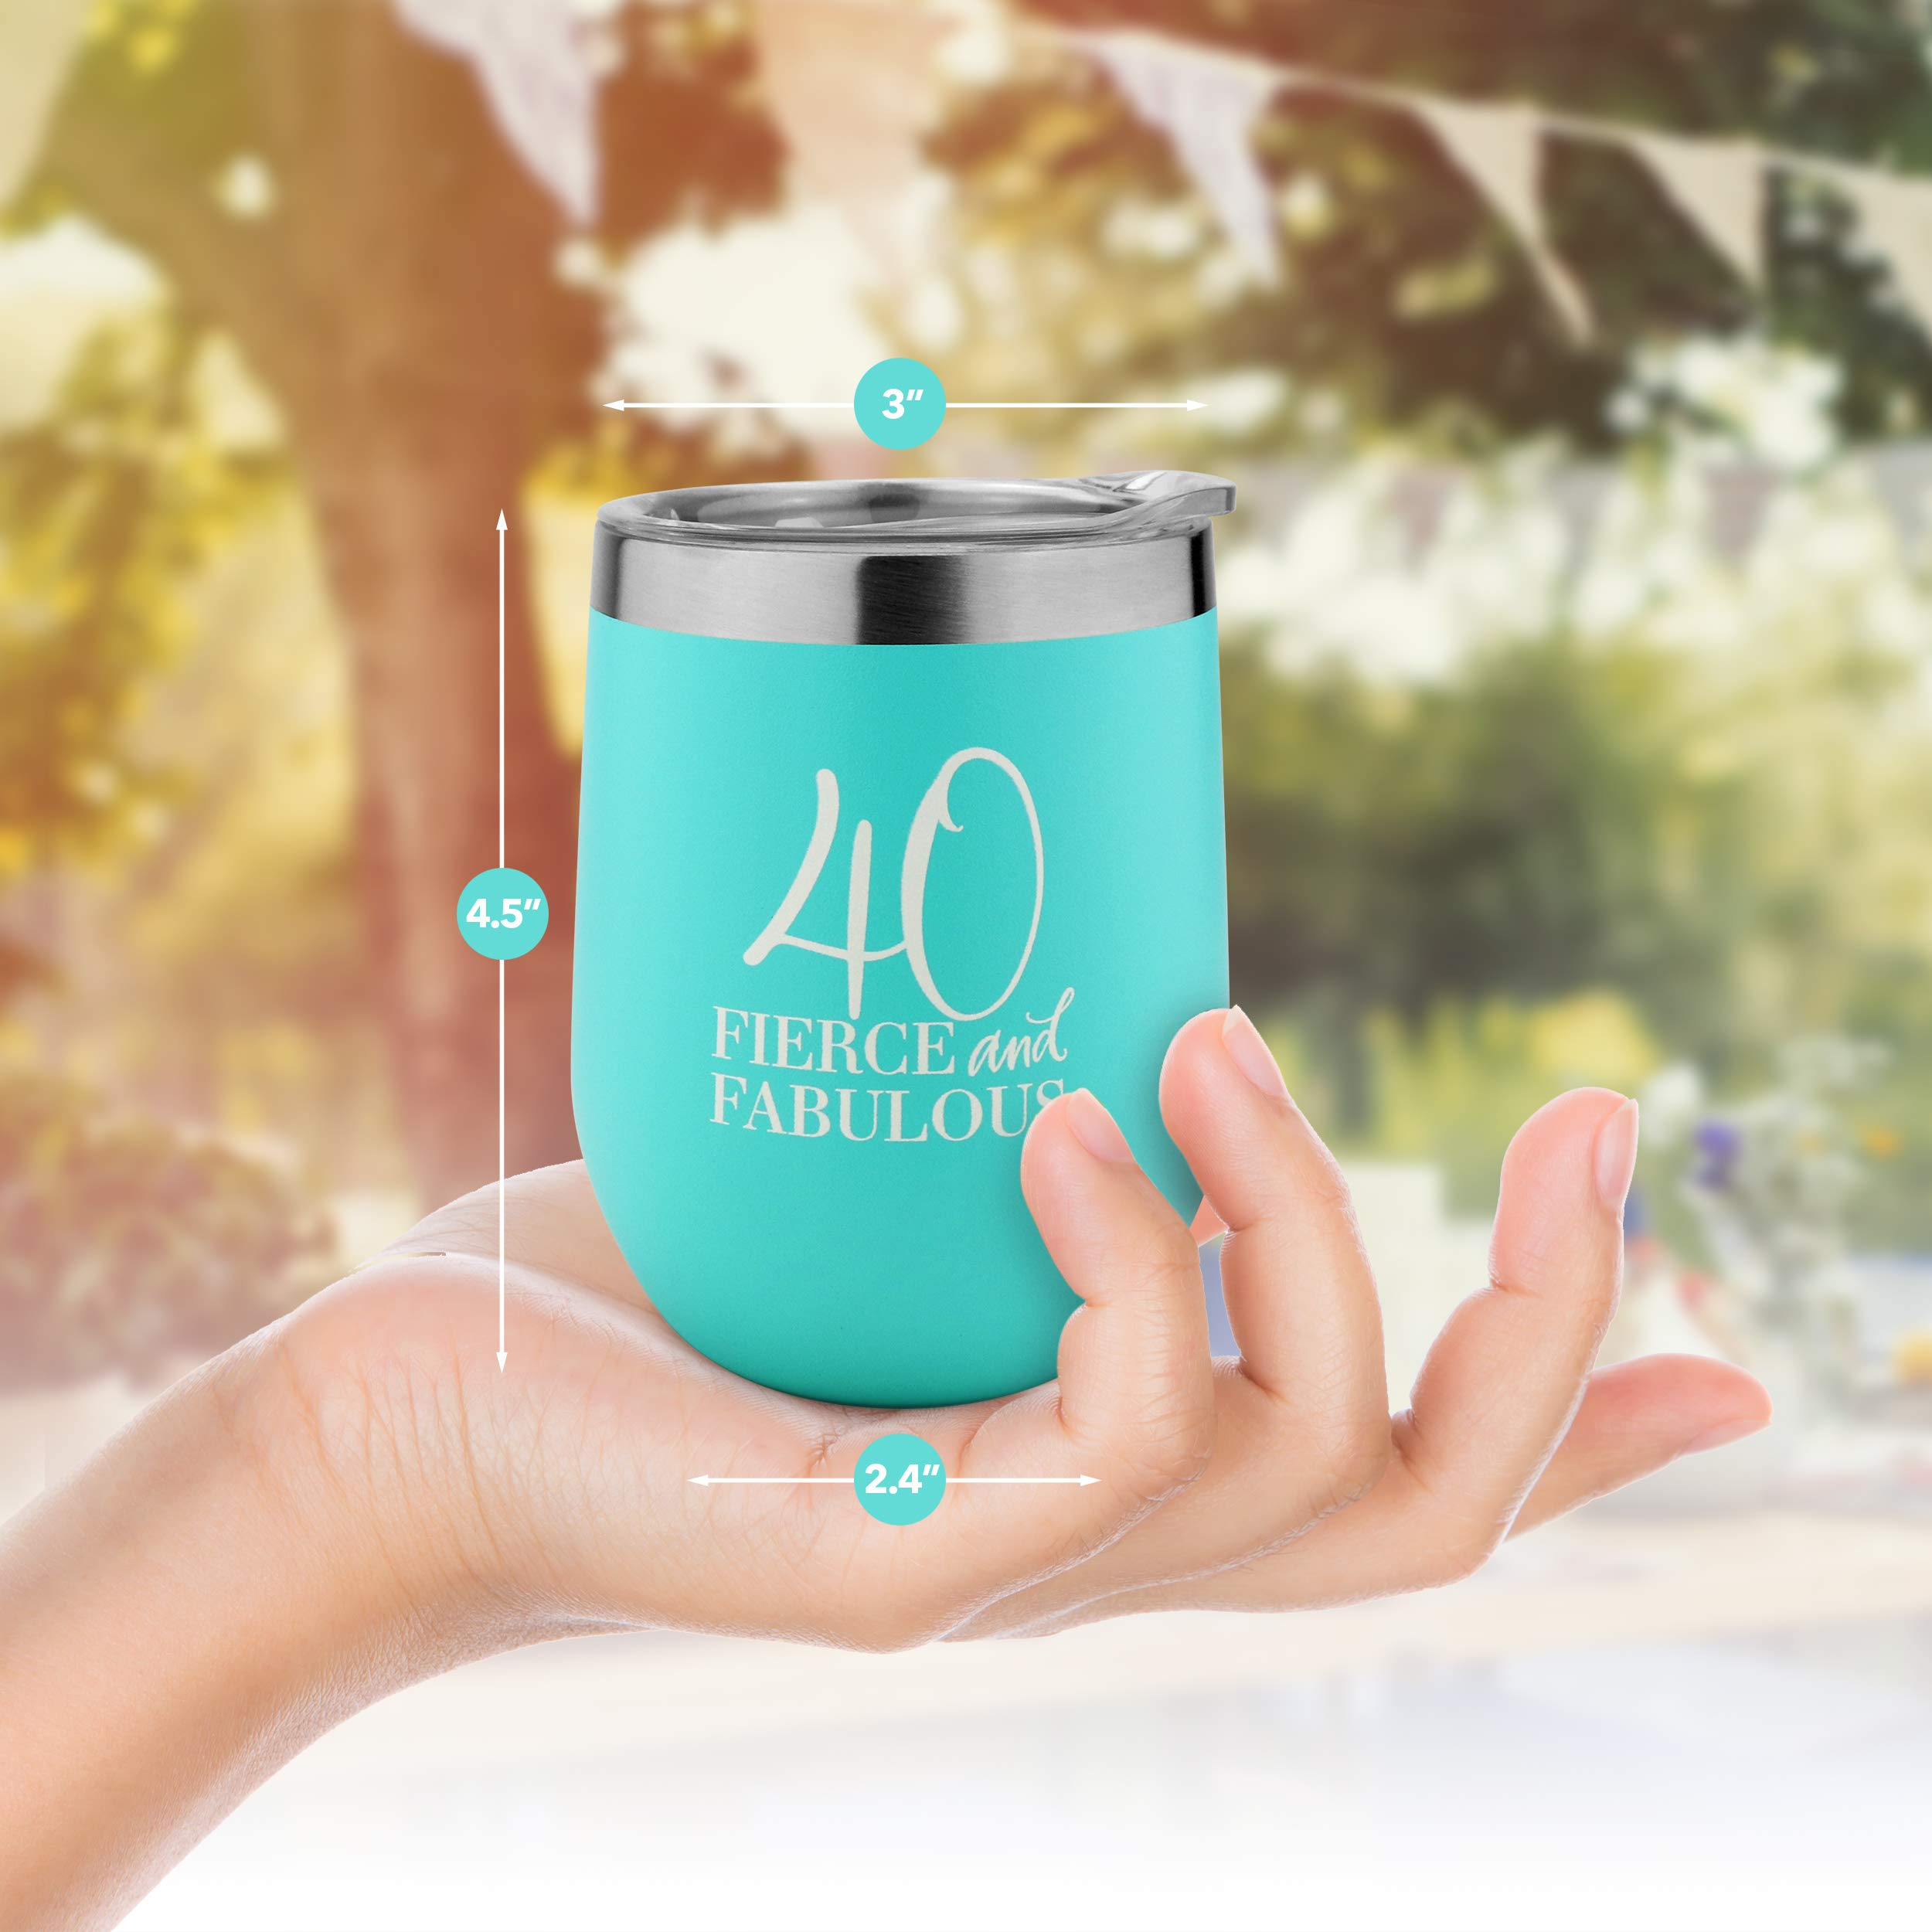 40th Birthday Gifts for Women, 12 oz Stainless Steel Wine Tumbler with Lid, Insulated Wine Glass for 40, Milestone Birthday Gift for Her, Presents for Turning Forty and Fabulous, Travel Cup by Sips & Gifts (Image #3)